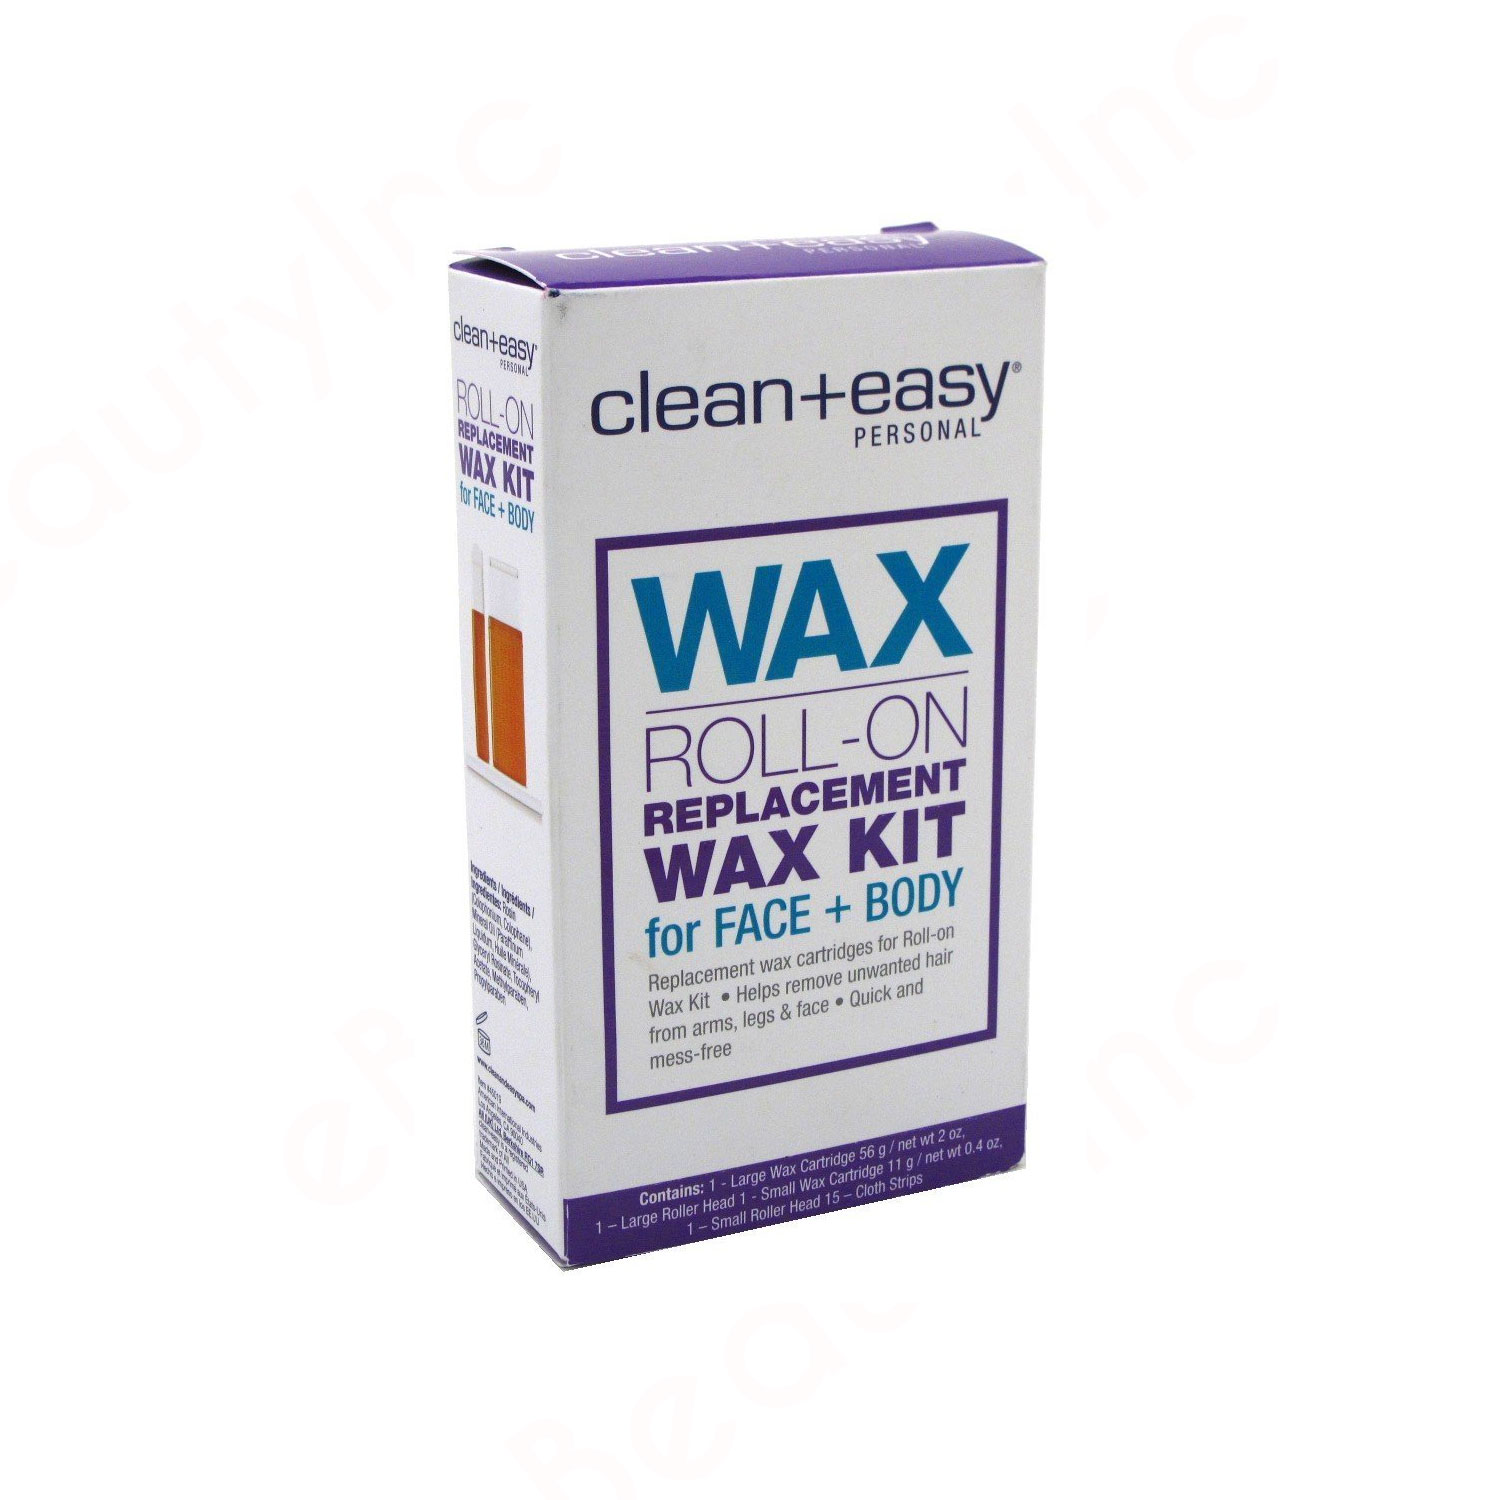 Image of Clean+Easy Wax Roll-On Replacement Wax Kit Face & Body